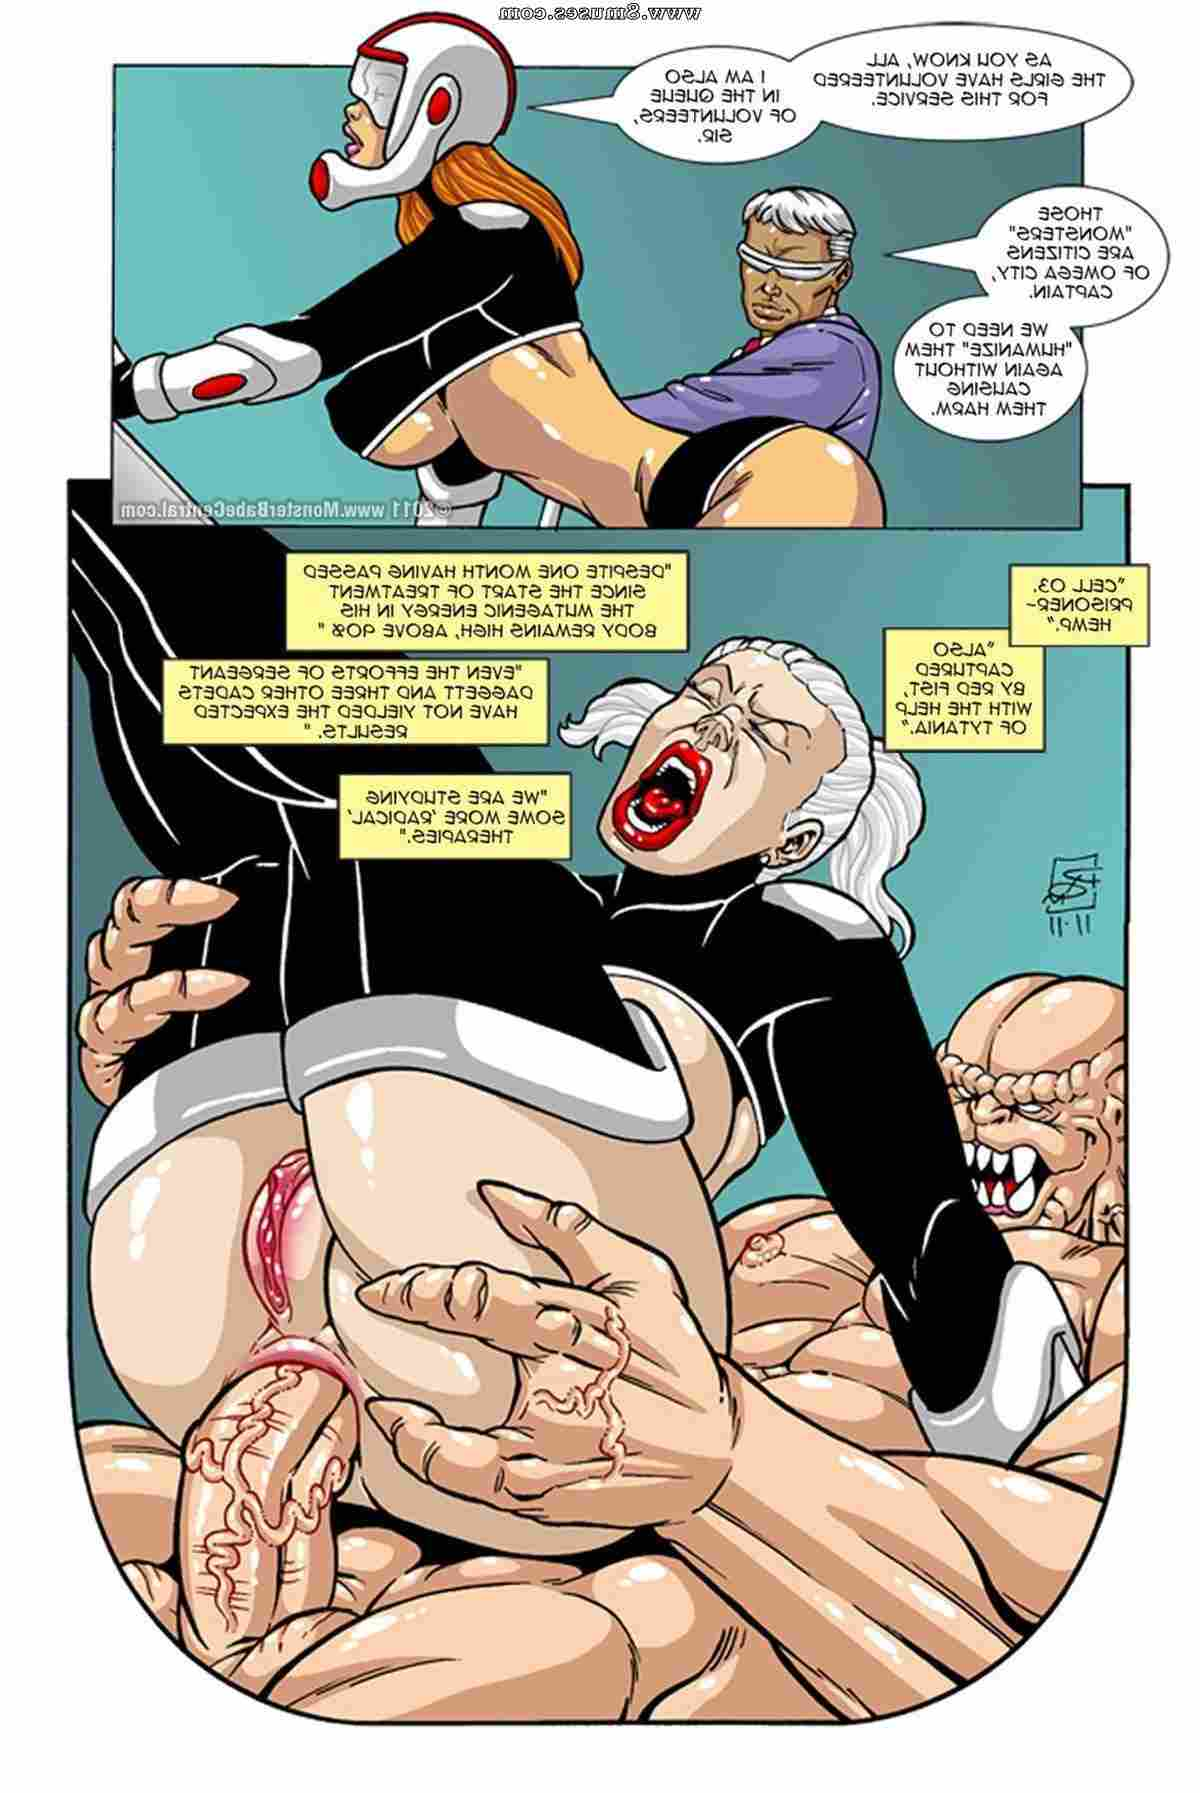 Central-Comics/Monster-Babe-Central/Omega-Fighters Omega_Fighters__8muses_-_Sex_and_Porn_Comics_74.jpg